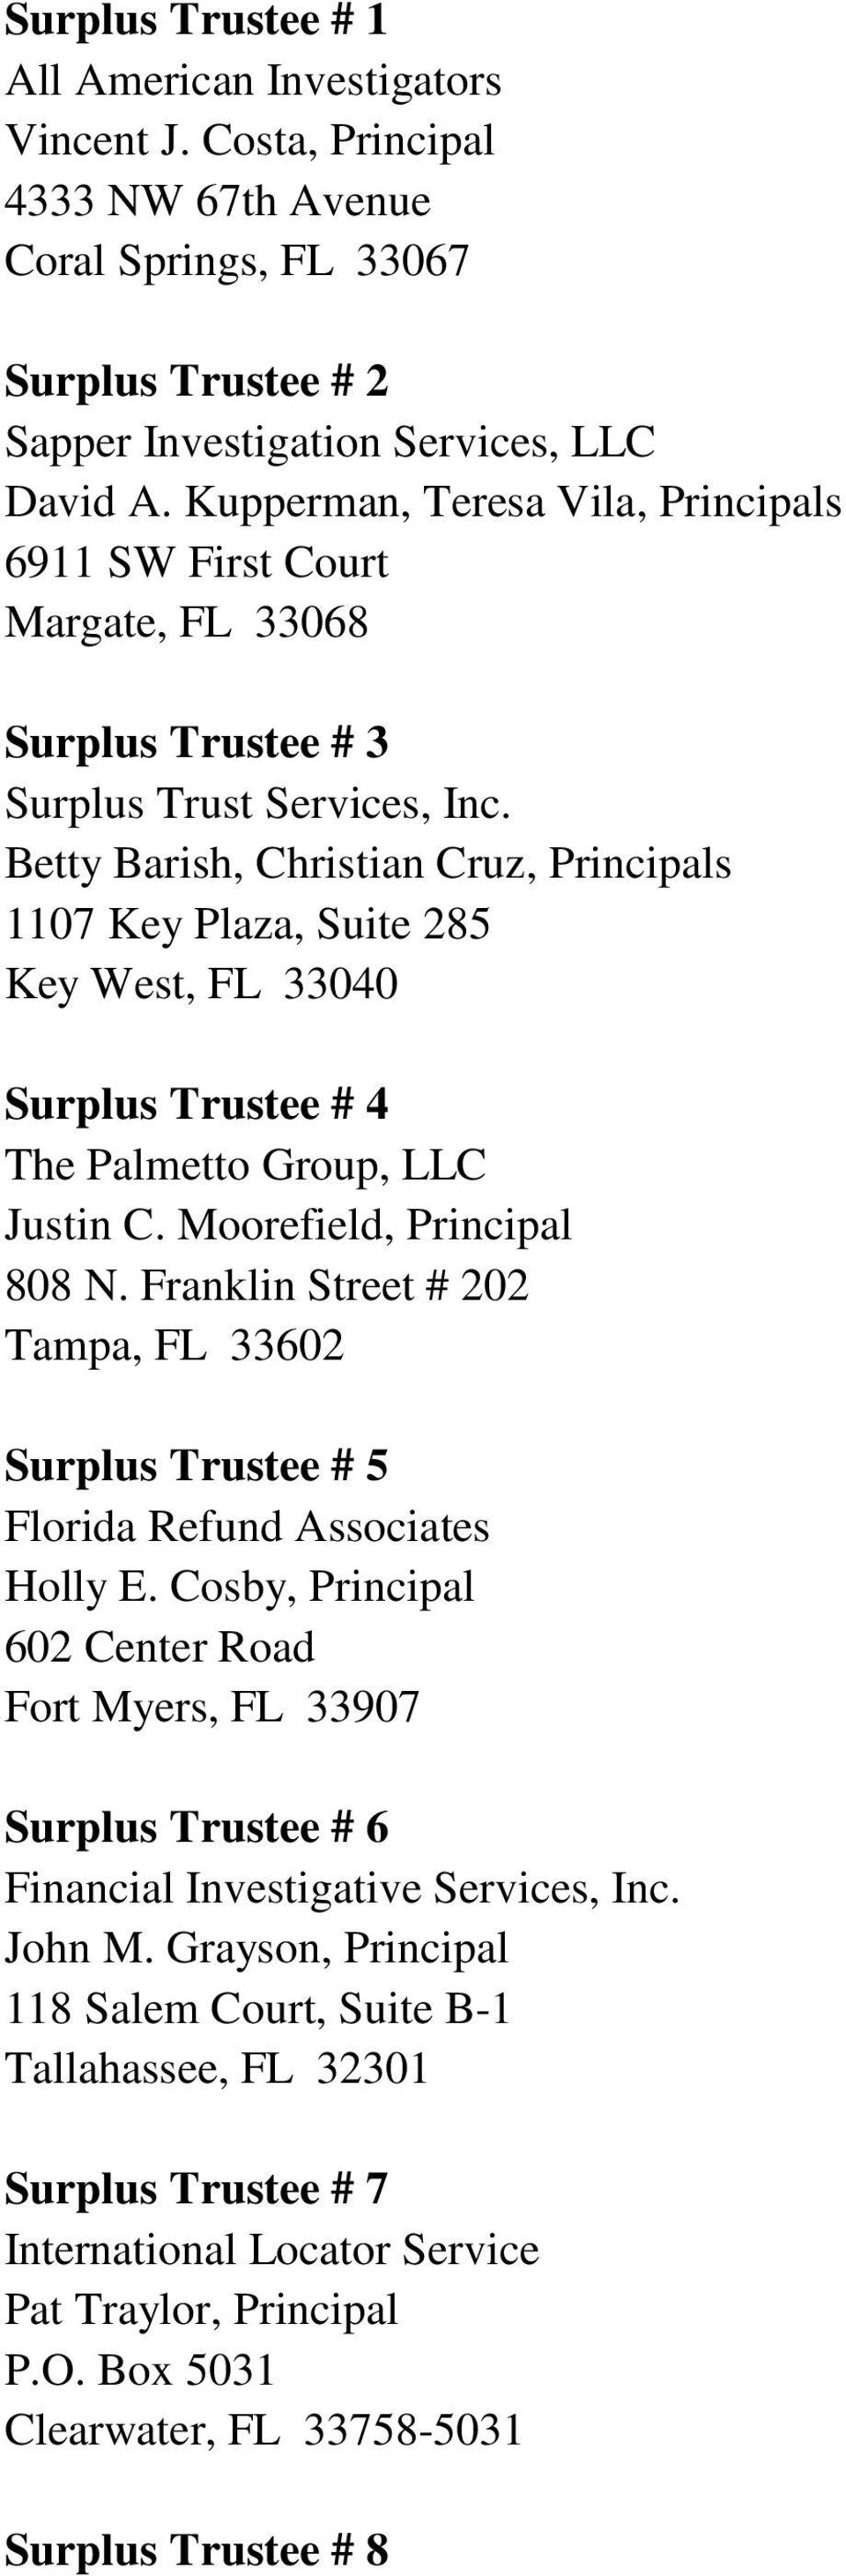 Surplus Trustee # 4 The Palmetto Group, LLC Justin C. Moorefield, Principal 808 N. Franklin Street # 202 Tampa, FL 33602 Surplus Trustee # 5 Florida Refund Associates Holly E.